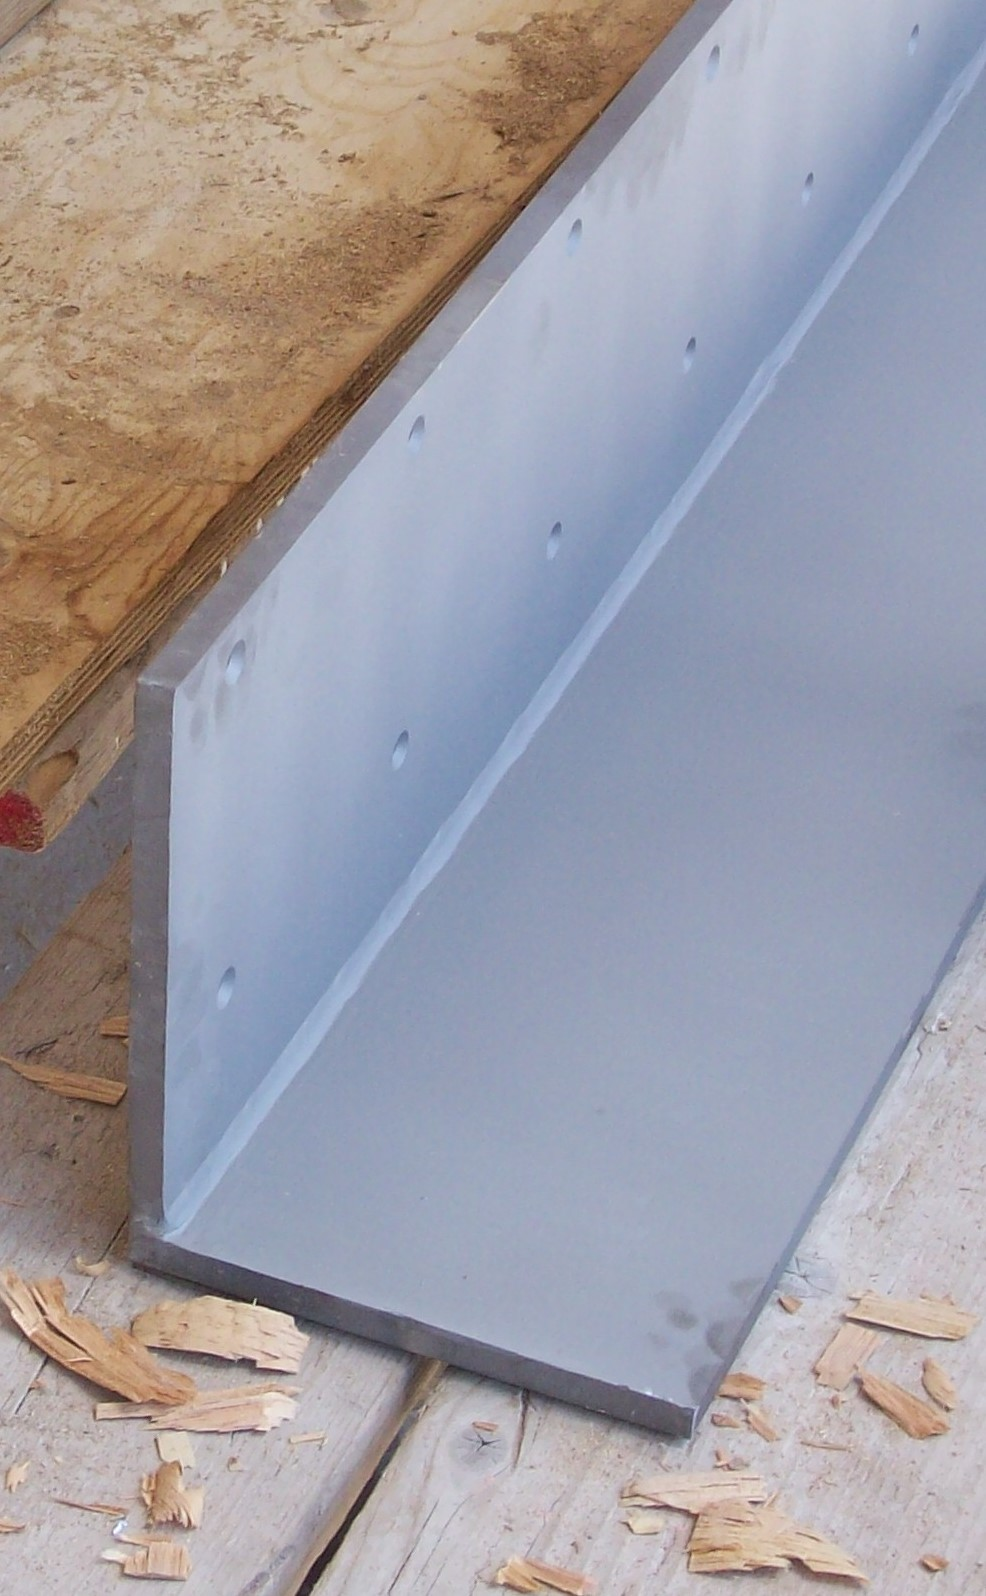 316 stainless steel curved angle bracket fabricated from plate